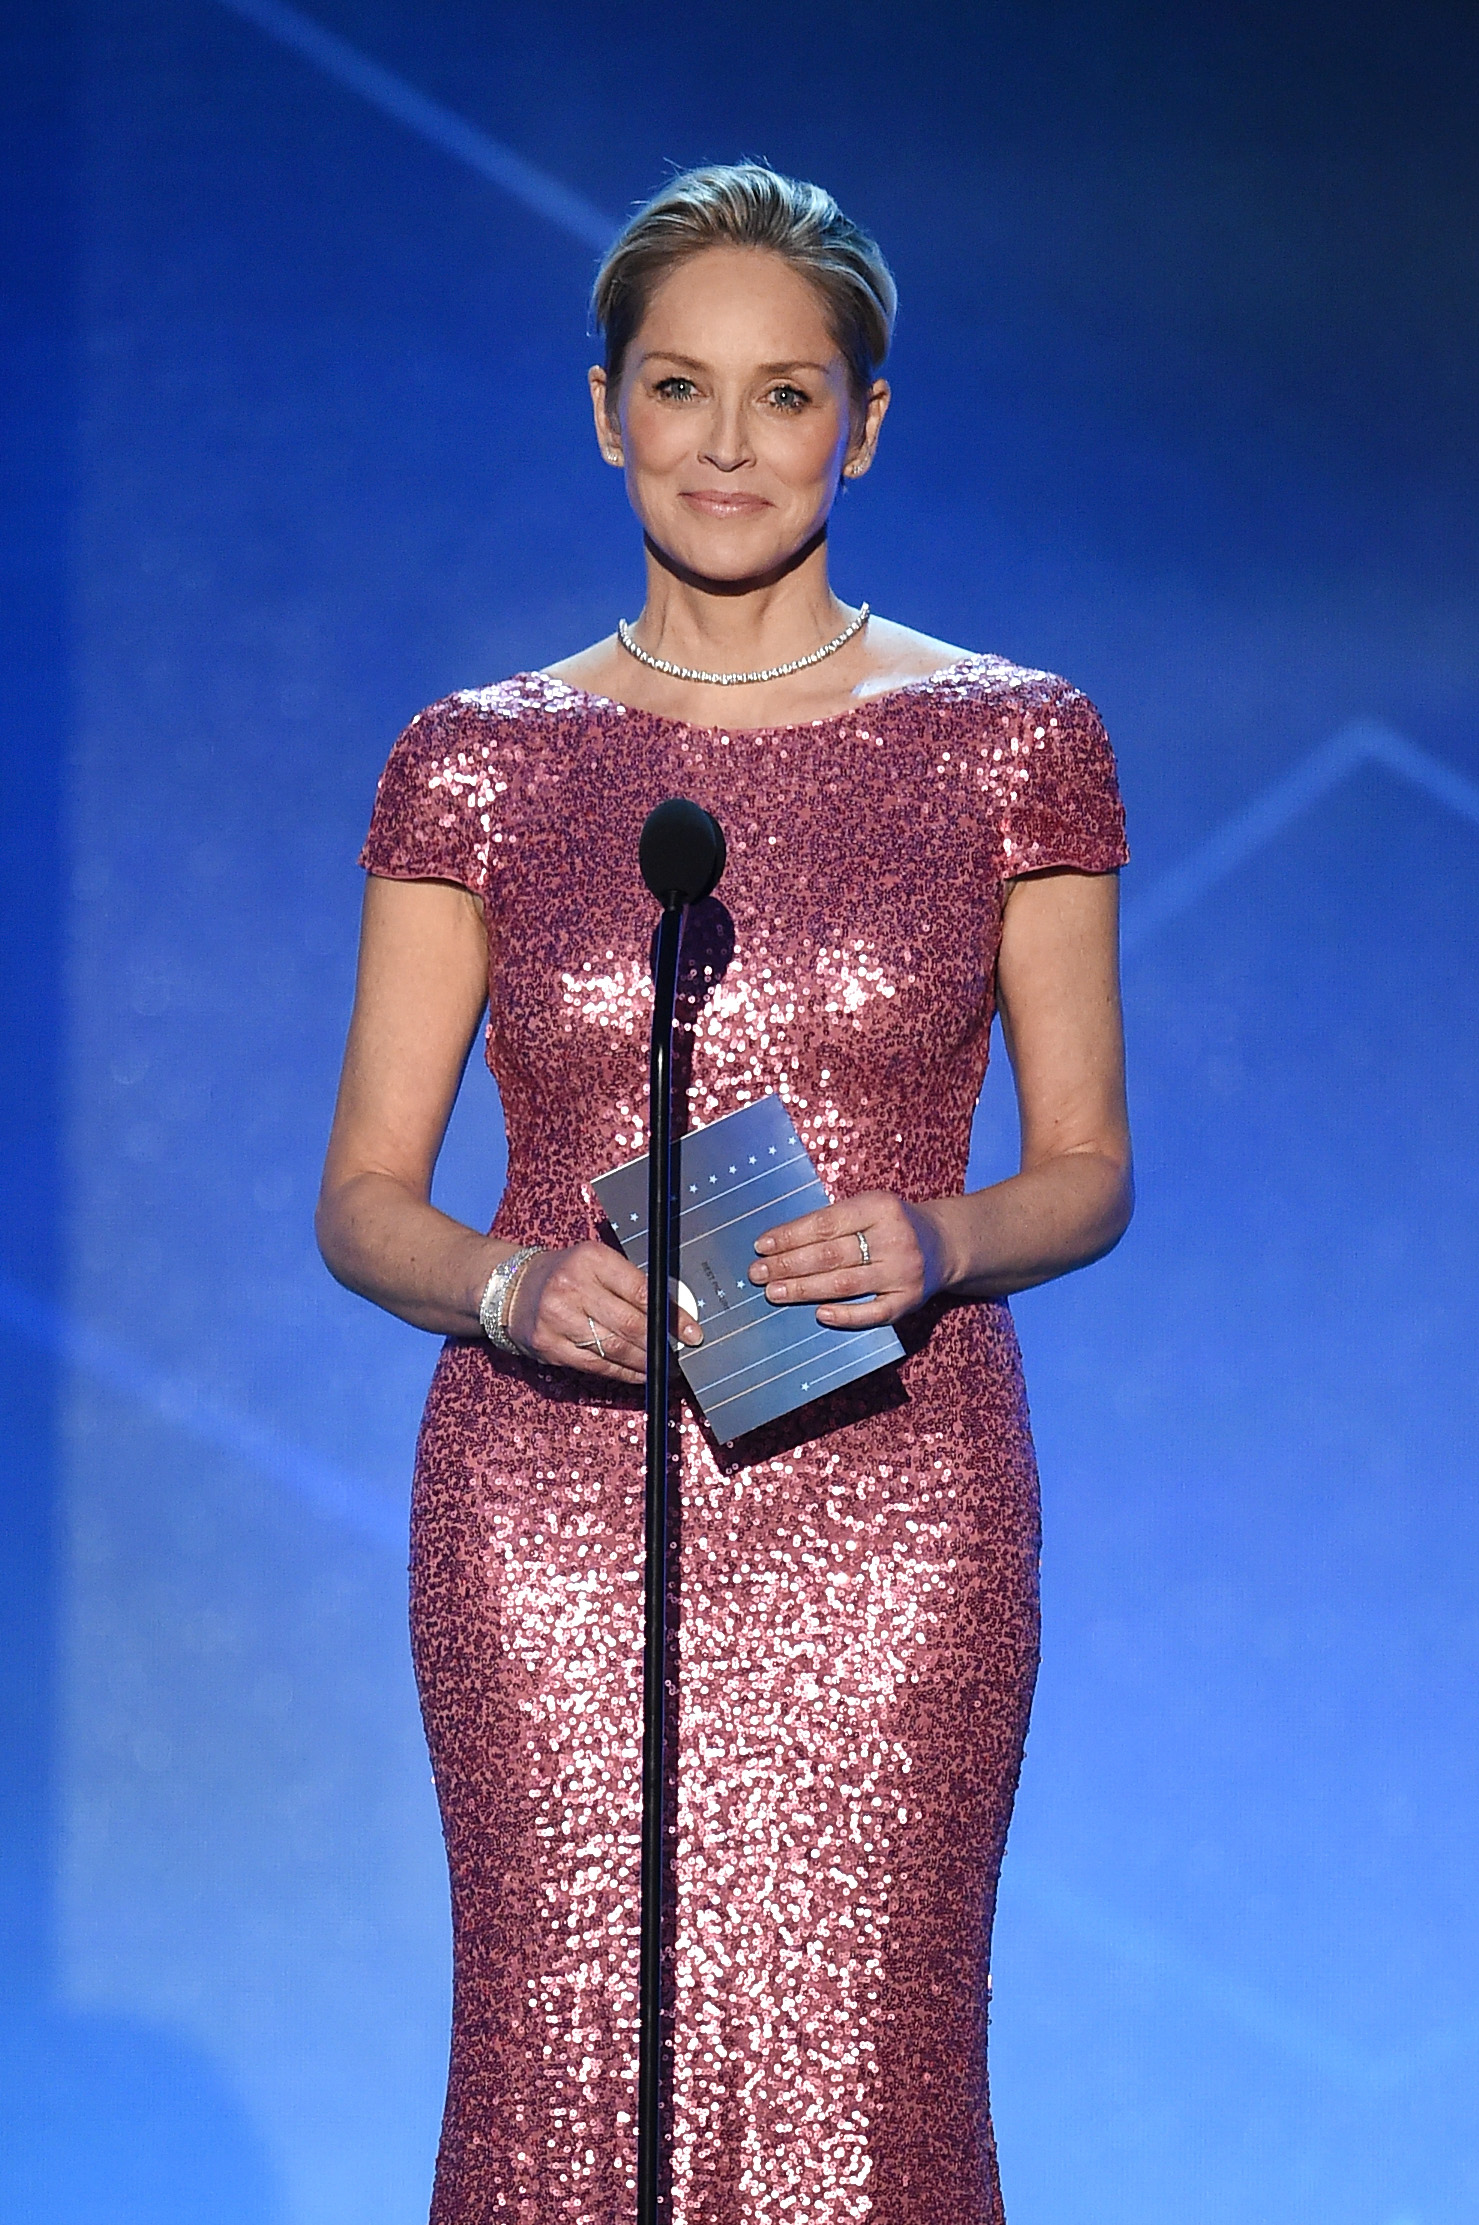 SANTA MONICA, CA - JANUARY 17: Actress Sharon Stone speaks onstage during the 21st Annual Critics' Choice Awards at Barker Hangar on January 17, 2016 in Santa Monica, California. (Photo by Kevin Winter/Getty Images)